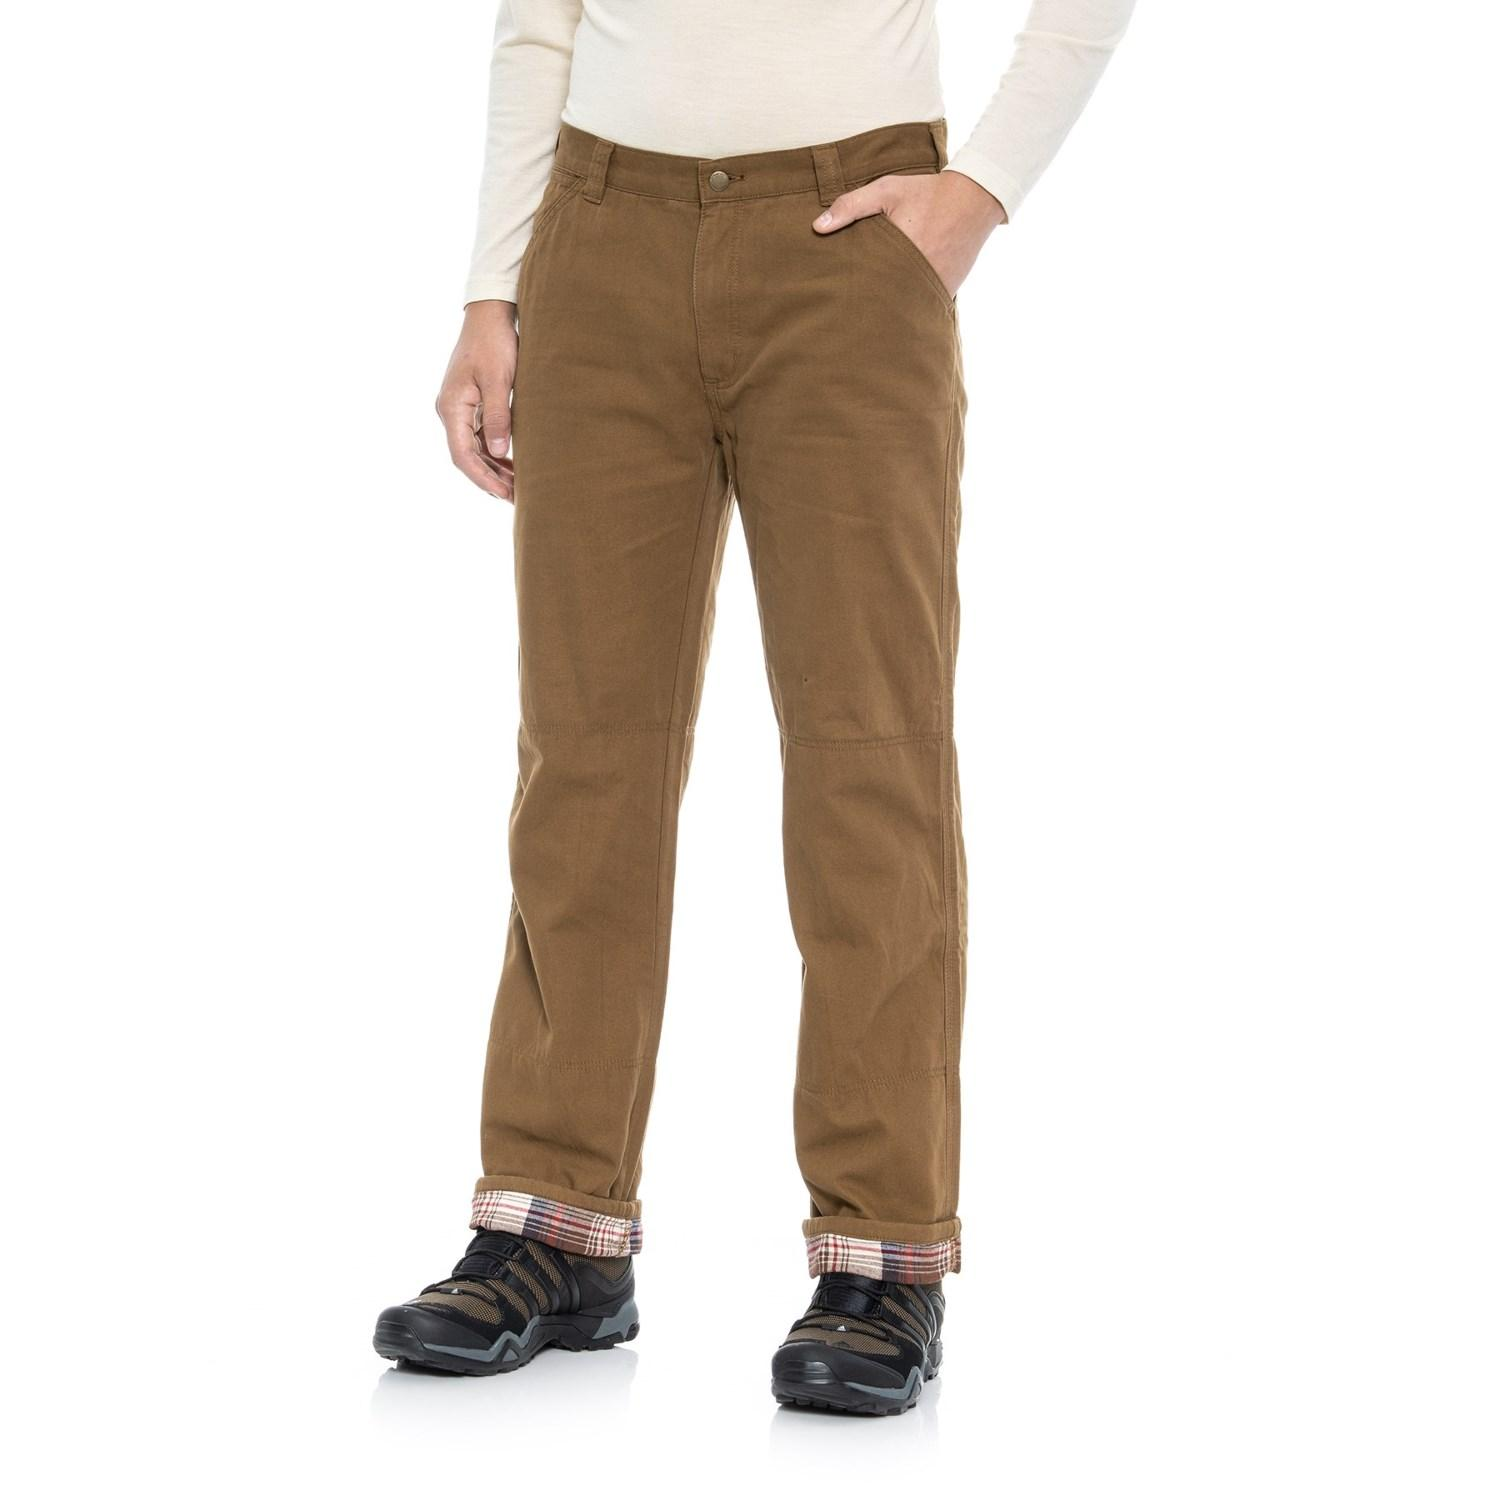 Coleman Flannel Lined Pants In Brown For Men Lyst